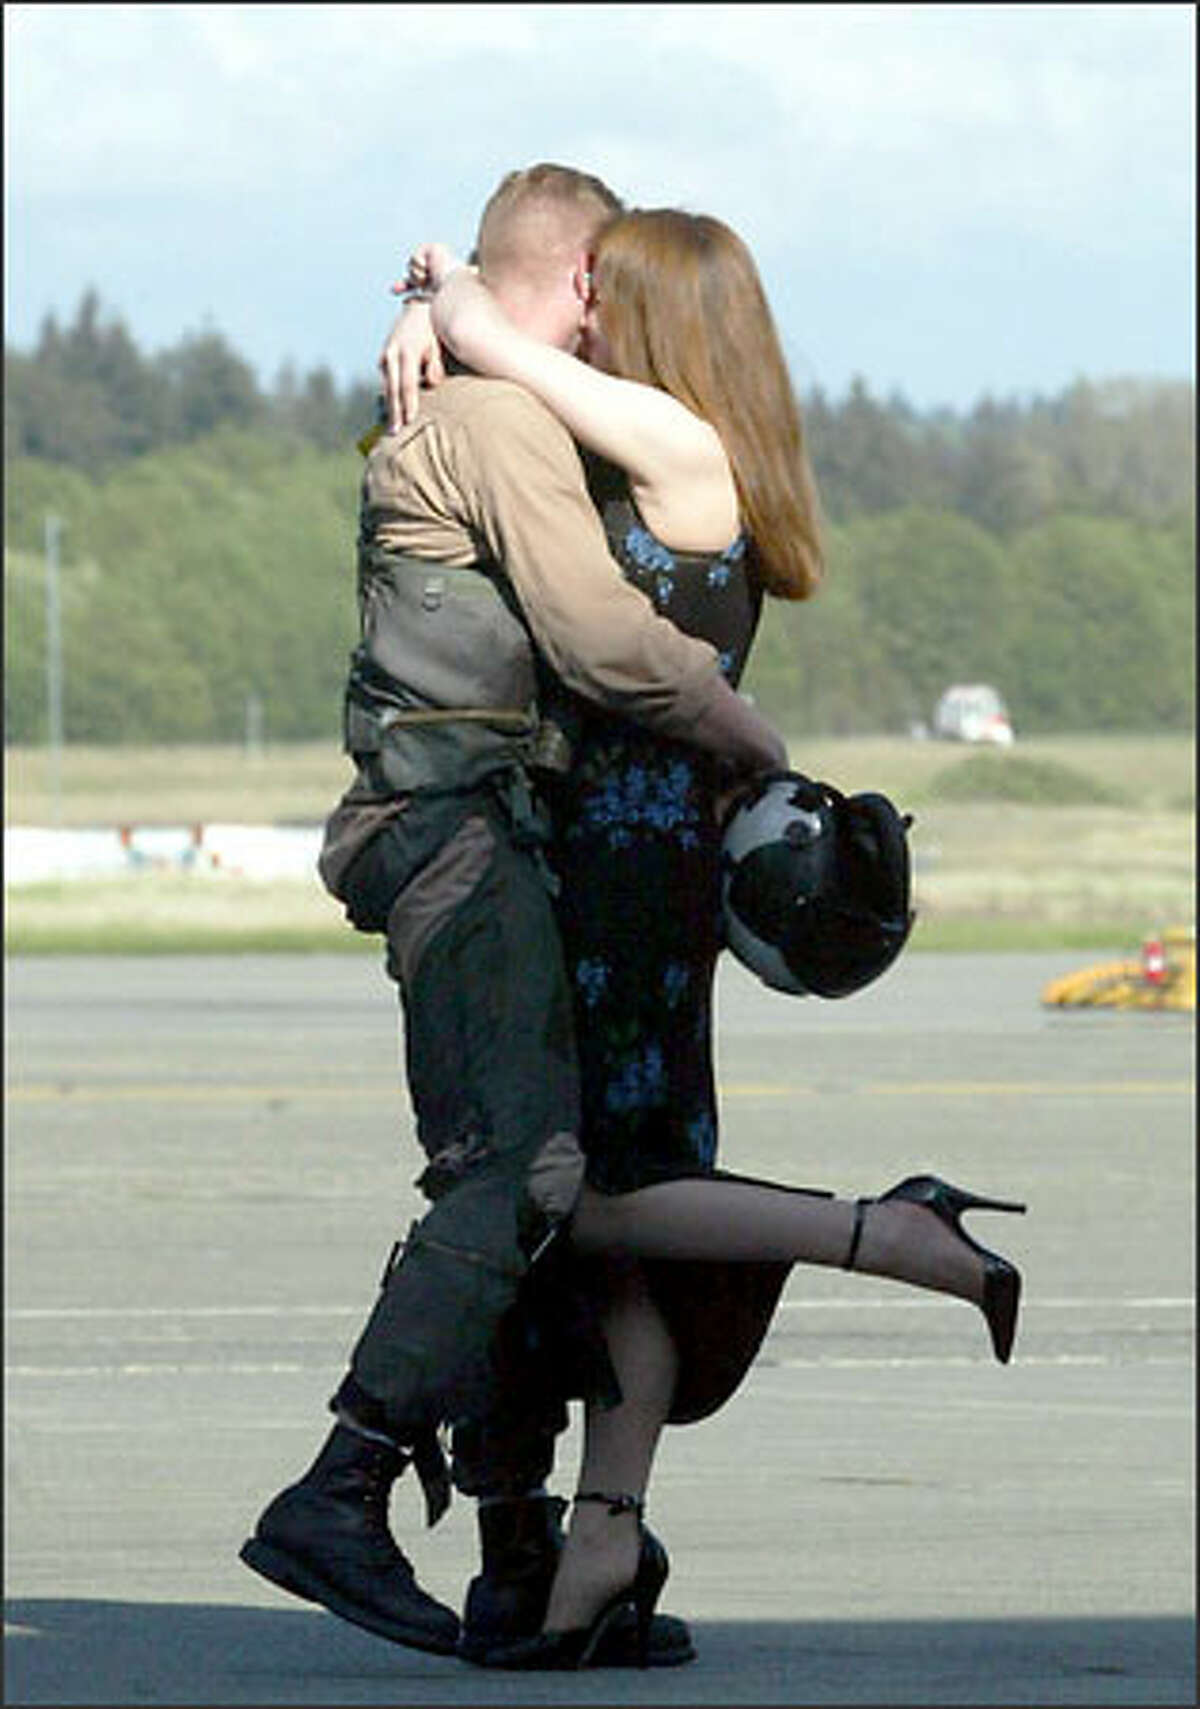 Lt. Jeff Barrett, an EA-6B Prowler pilot, embraces his wife, Kate, after arriving at Whidbey Island Naval Air Station.Schenker: